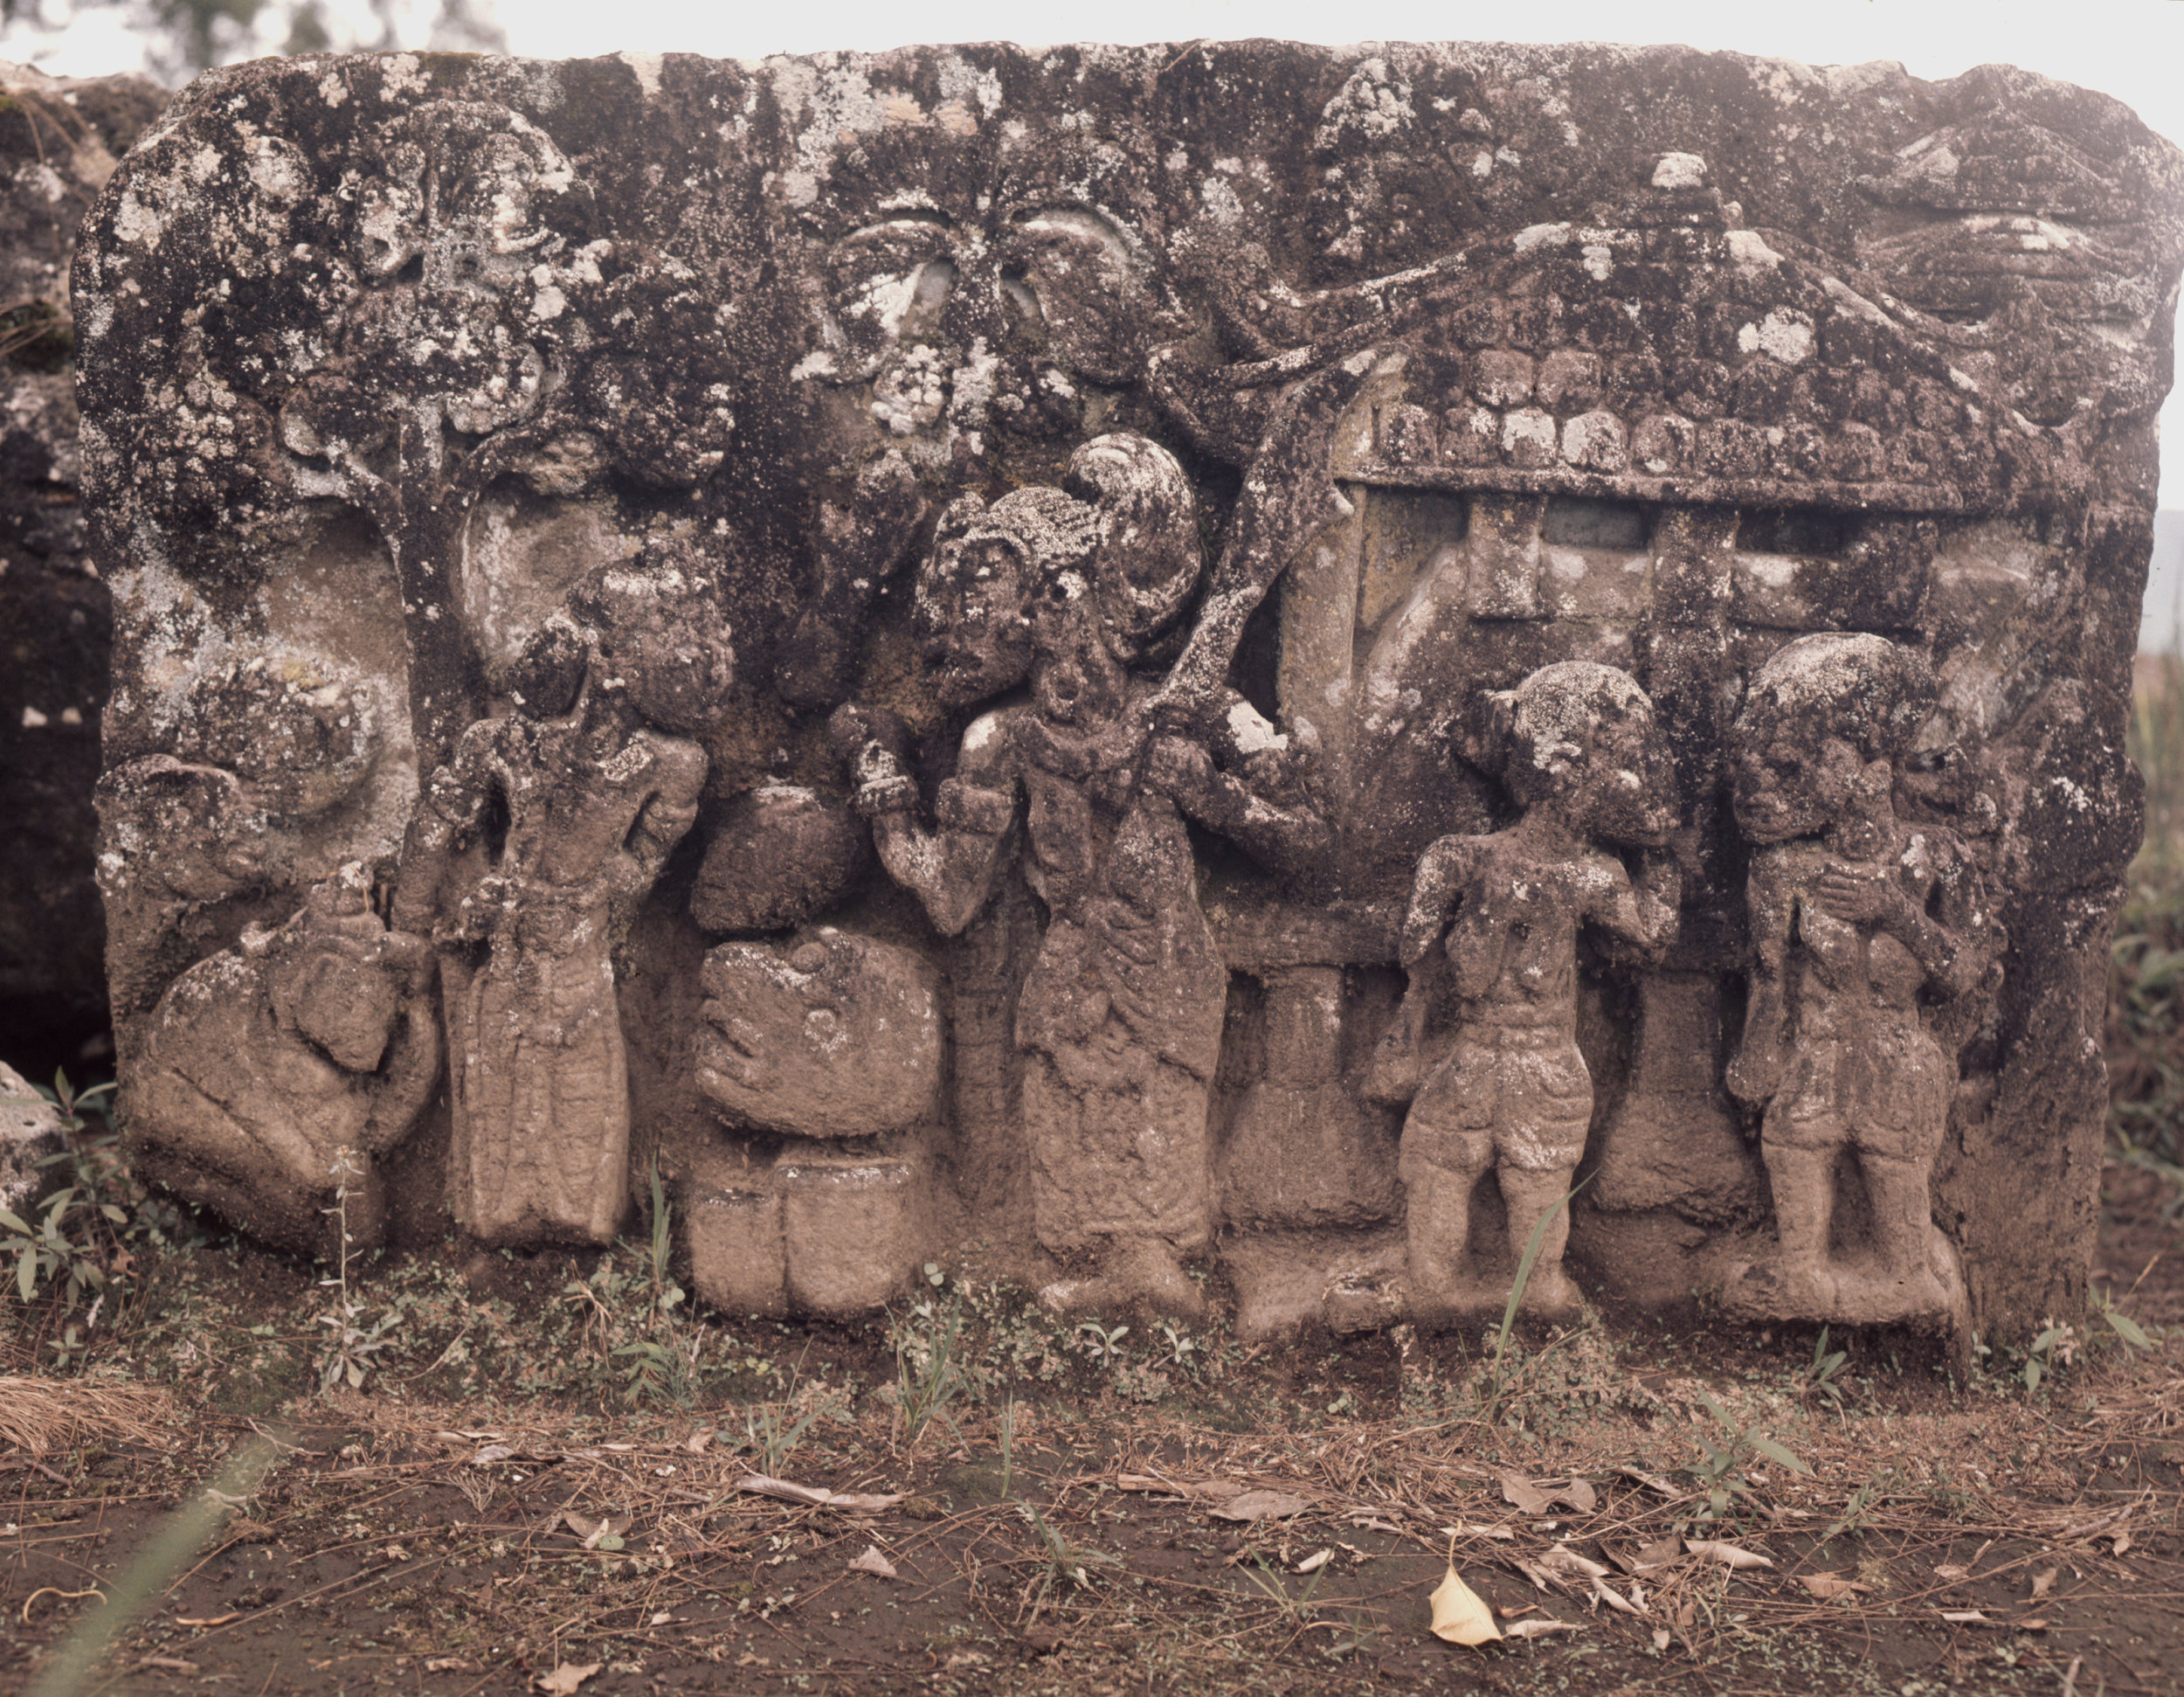 Relief from Candi Sukuh, a sacred place for the worship of ancestors, nature spirits and fertility cults. Country of Origin: Indonesia. Culture: Hindu. Date/Period: c 1437 AD, Majapahit Kingdom. Place of Origin: Central Java, Western slopes of Mount Lawu. Credit Line: Werner Forman Archive.